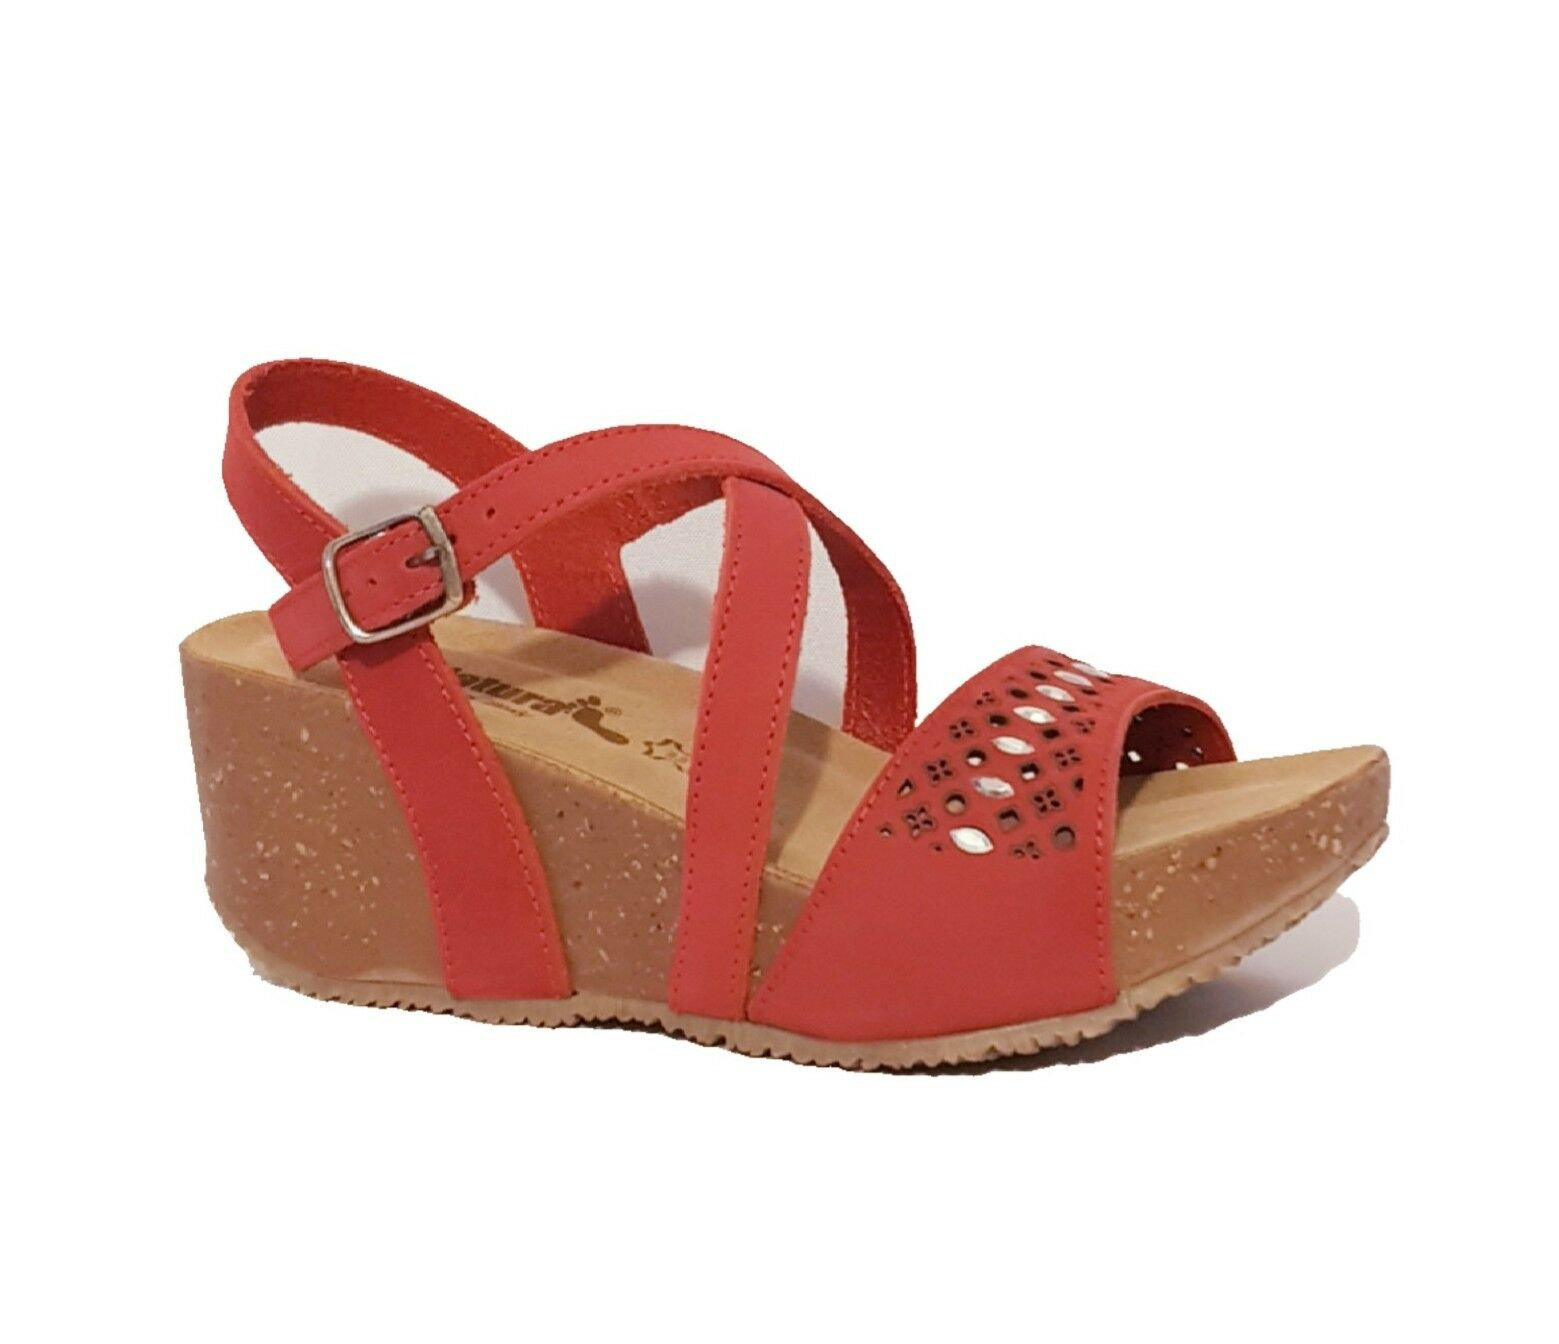 BIONATURA 24 A 810  CORAL rot LEATHER WEDGE SANDALS MADE IN ITALY LADIES